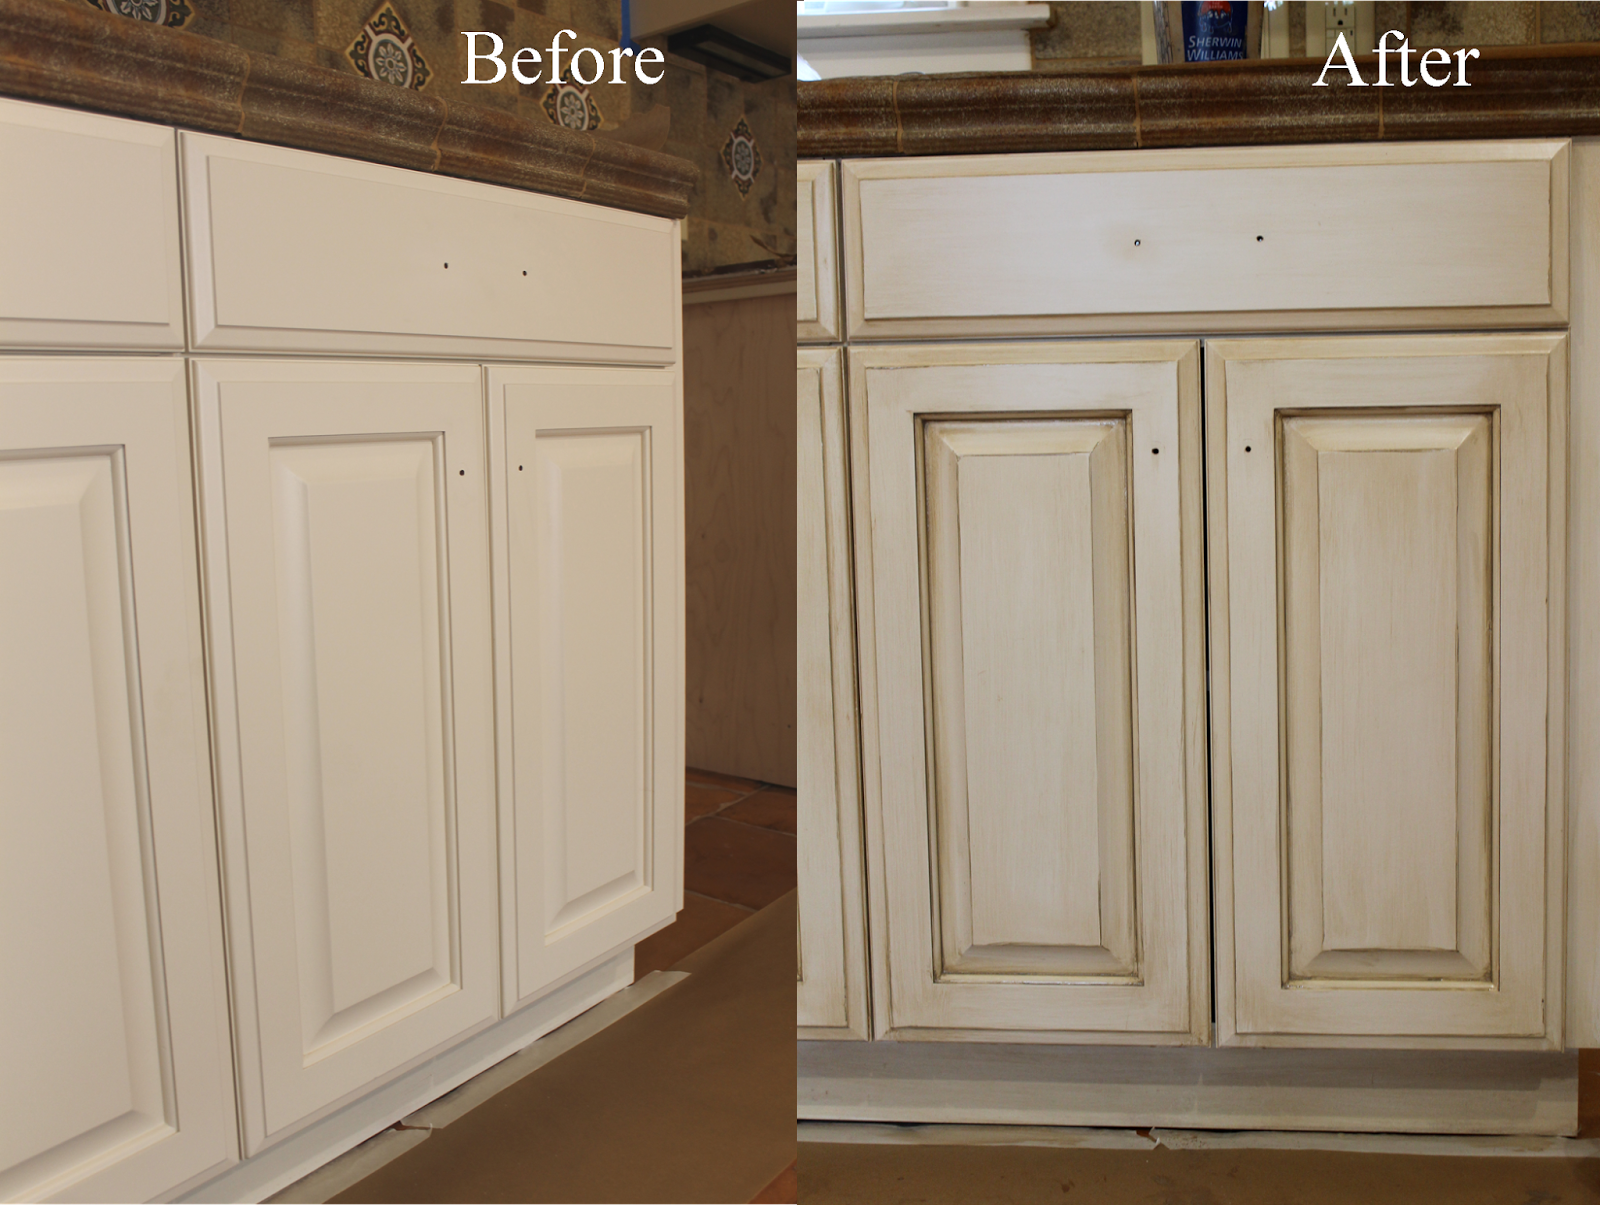 antiqued kitchen cabinets magazine kitchens before and after glazing antiquing a complete how to guide from professional faux finisher shows you glaze like pro